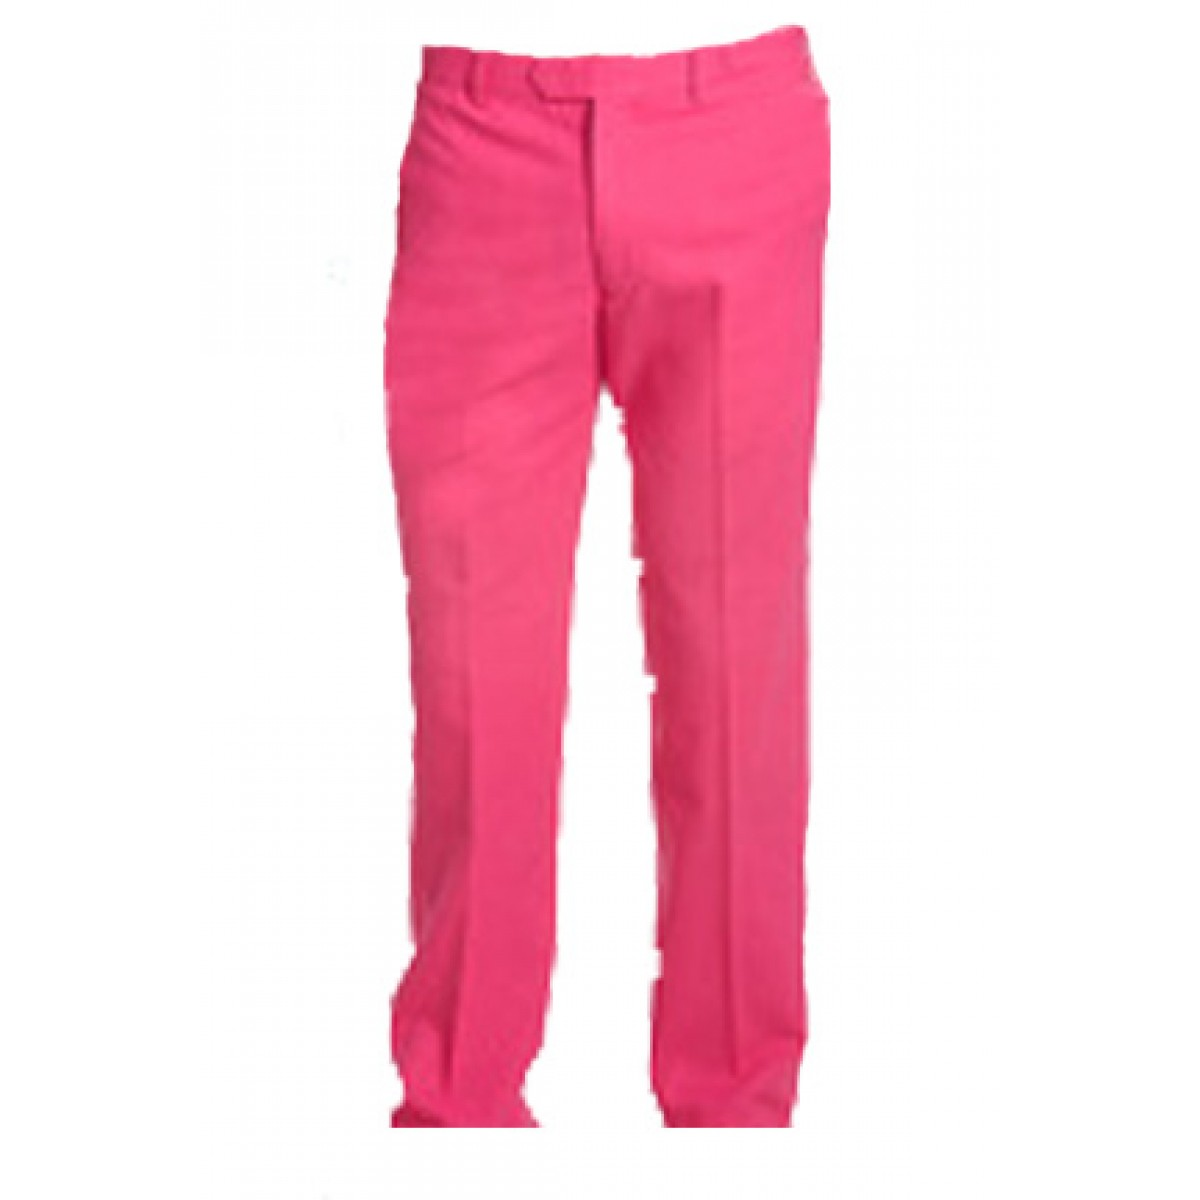 hot pink pants from jazzy ape FAVCHHQ